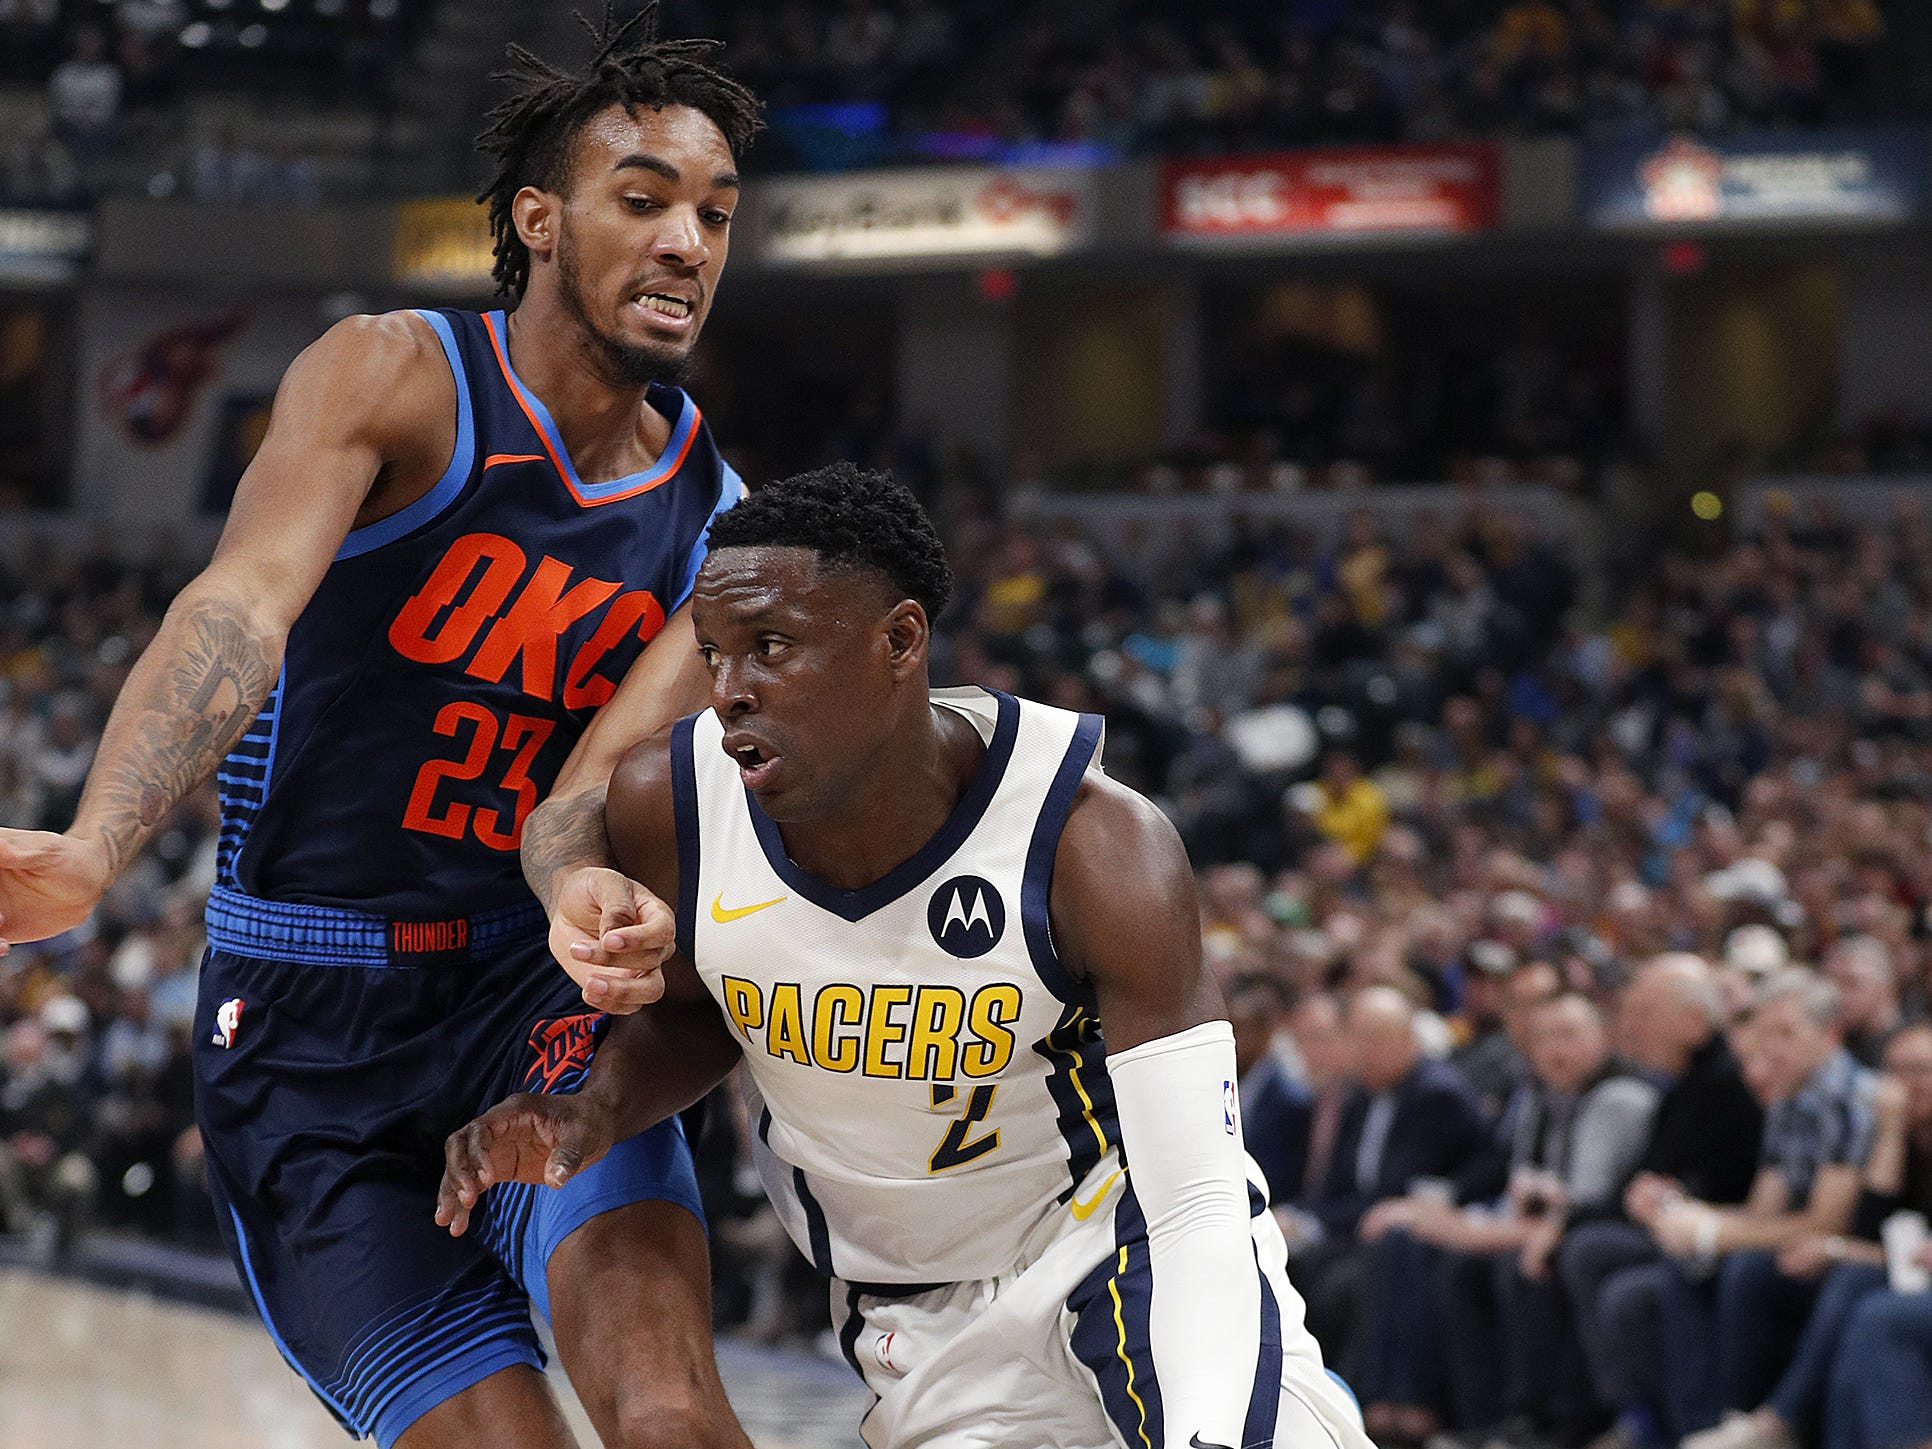 Indiana Pacers guard Darren Collison (2) drives to the basker on Oklahoma City Thunder guard Terrance Ferguson (23) in the first half of their game at Bankers Life Fieldhouse on Thursday, Mar. 14, 2019.